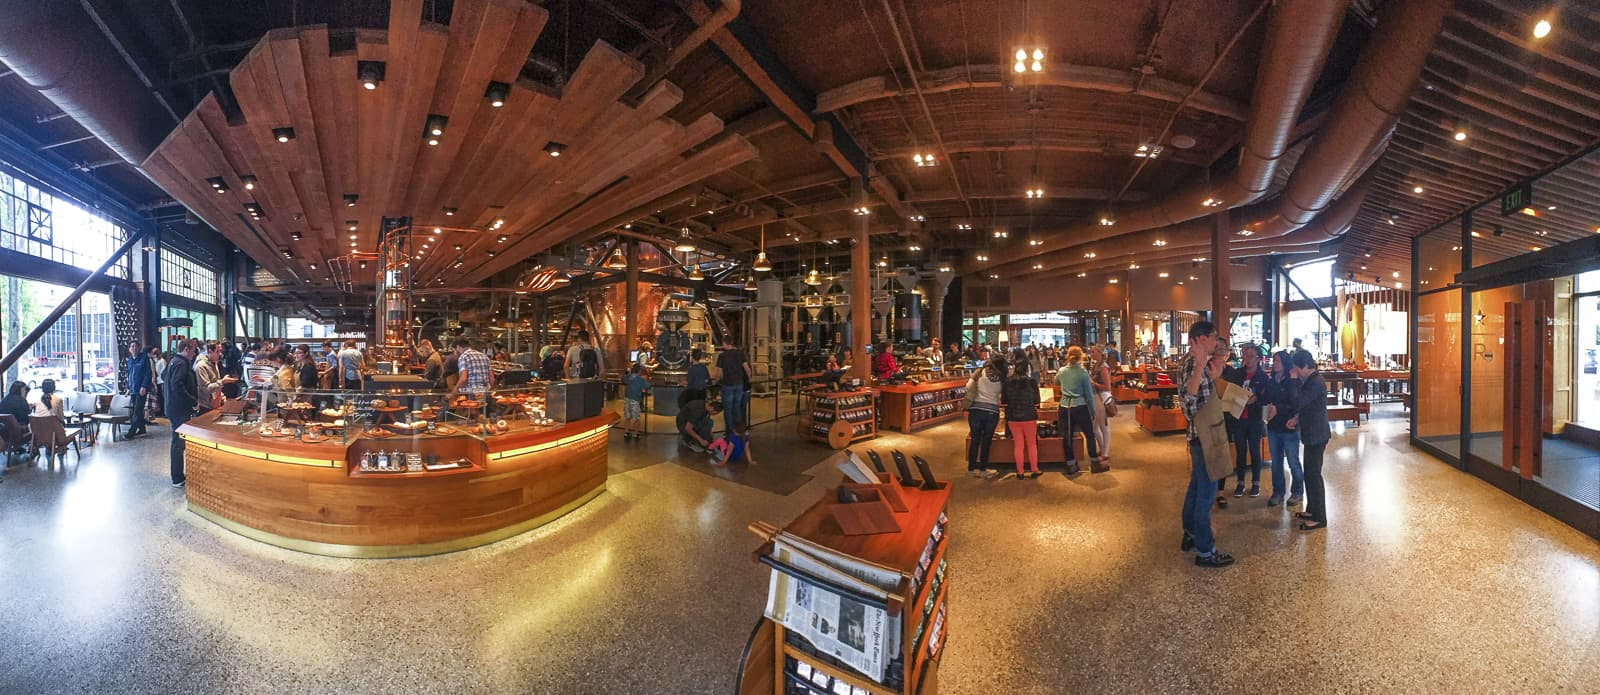 Panorama of Starbucks Reserve Roastery in Seattle. Photo: James Tan